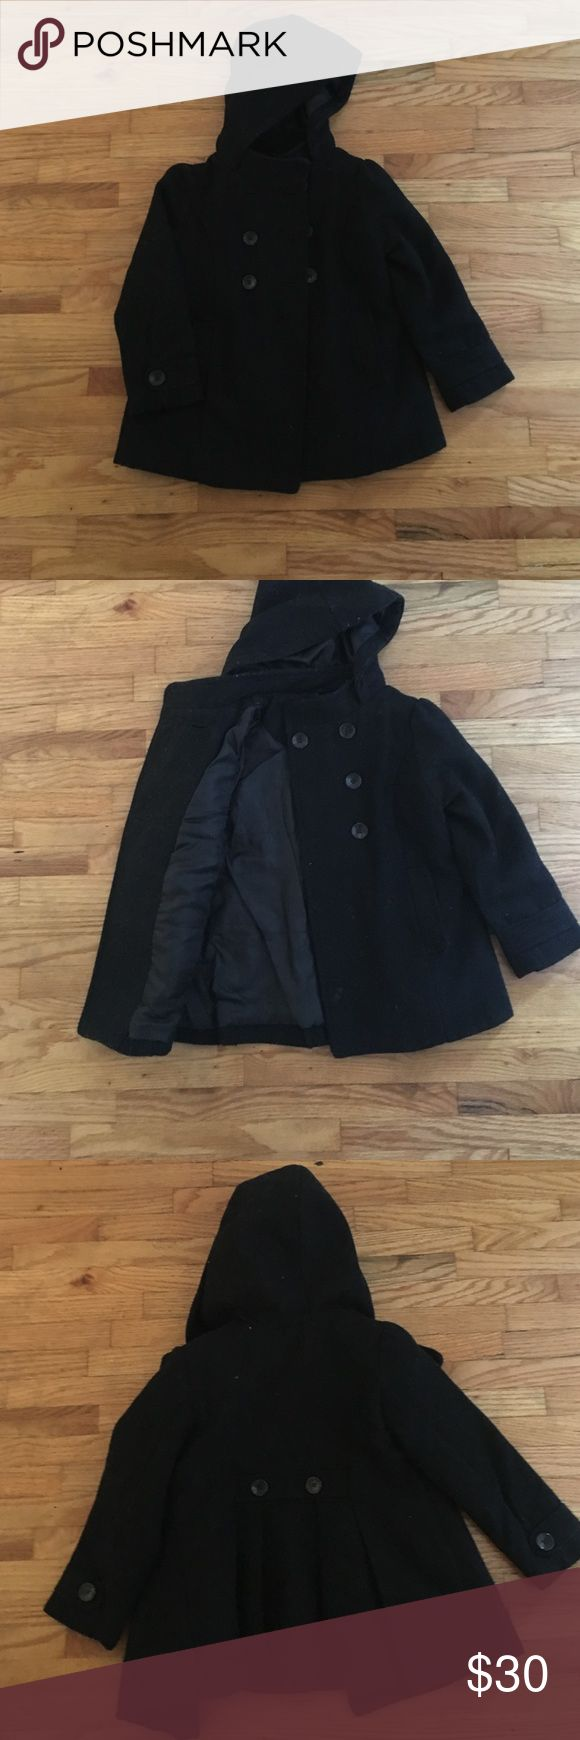 Old navy toddler girl peacoat This is a really cute black pea coat. It is in really good condition. Lightly worn. Great for cold weather Old Navy Jackets & Coats Pea Coats